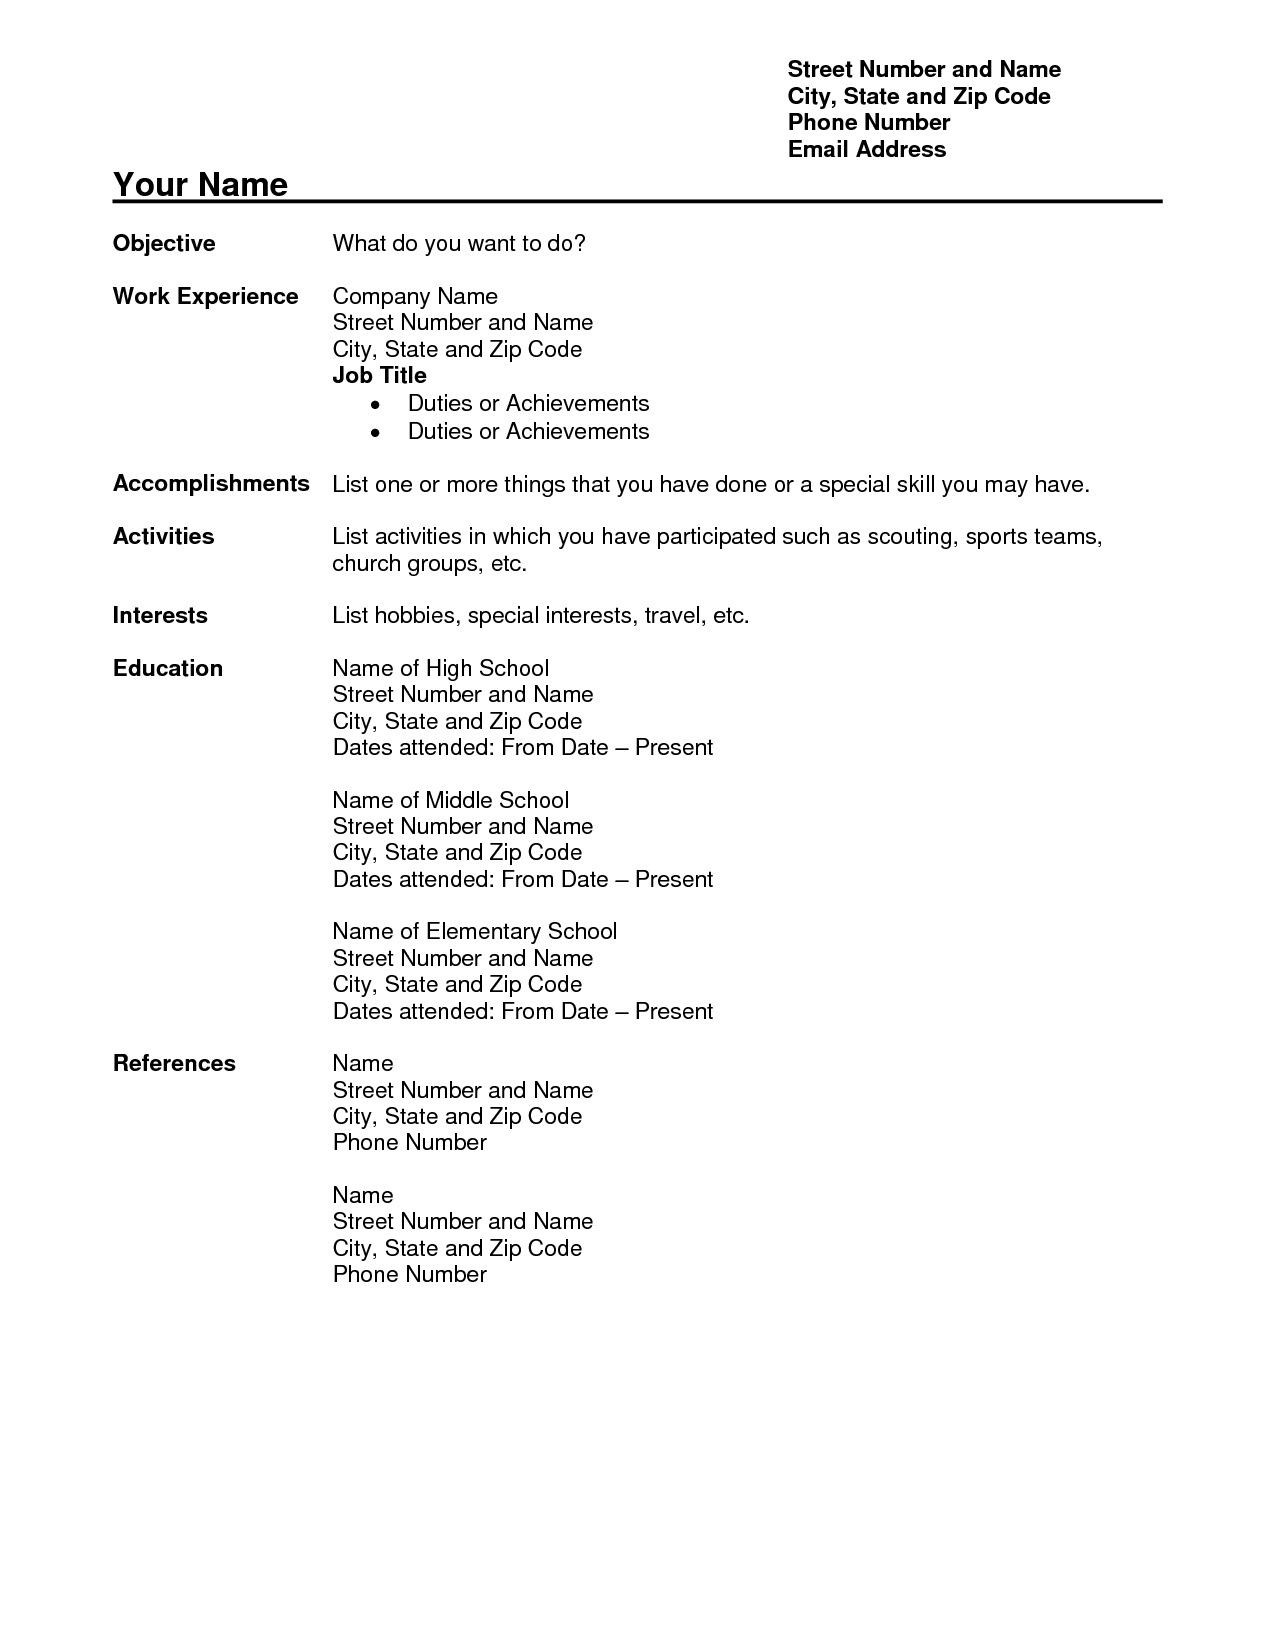 Free Teacher Resume Templates Download Free Teacher Resume Templates  Download, Free Teacher Resume Templates Microsoft  Free Resume Template Download Pdf